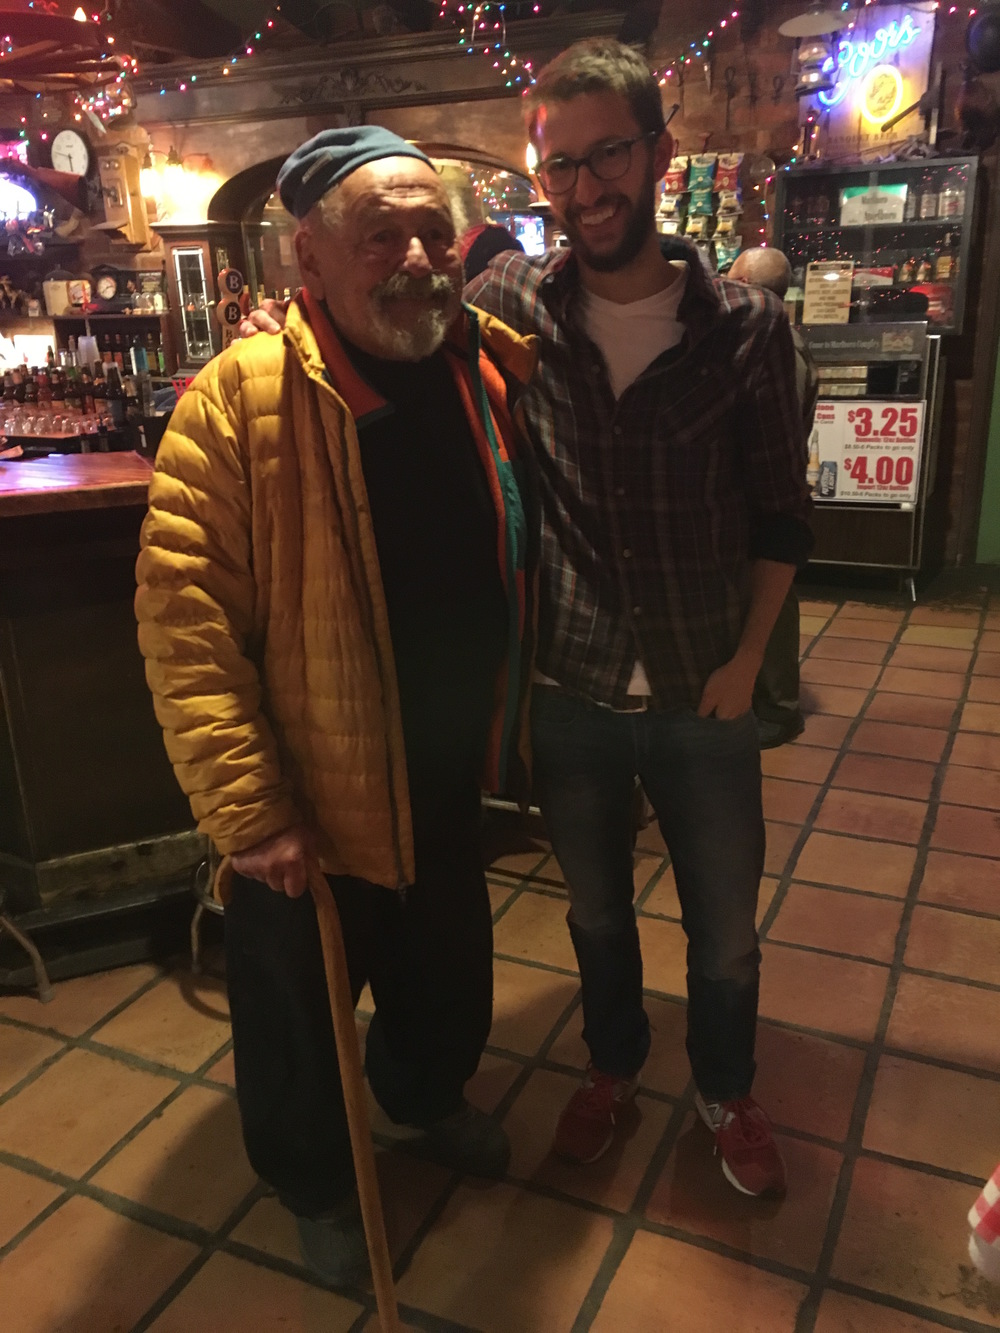 Quick shot with Jim Harrison before he departs the Wagon Wheel Saloon.